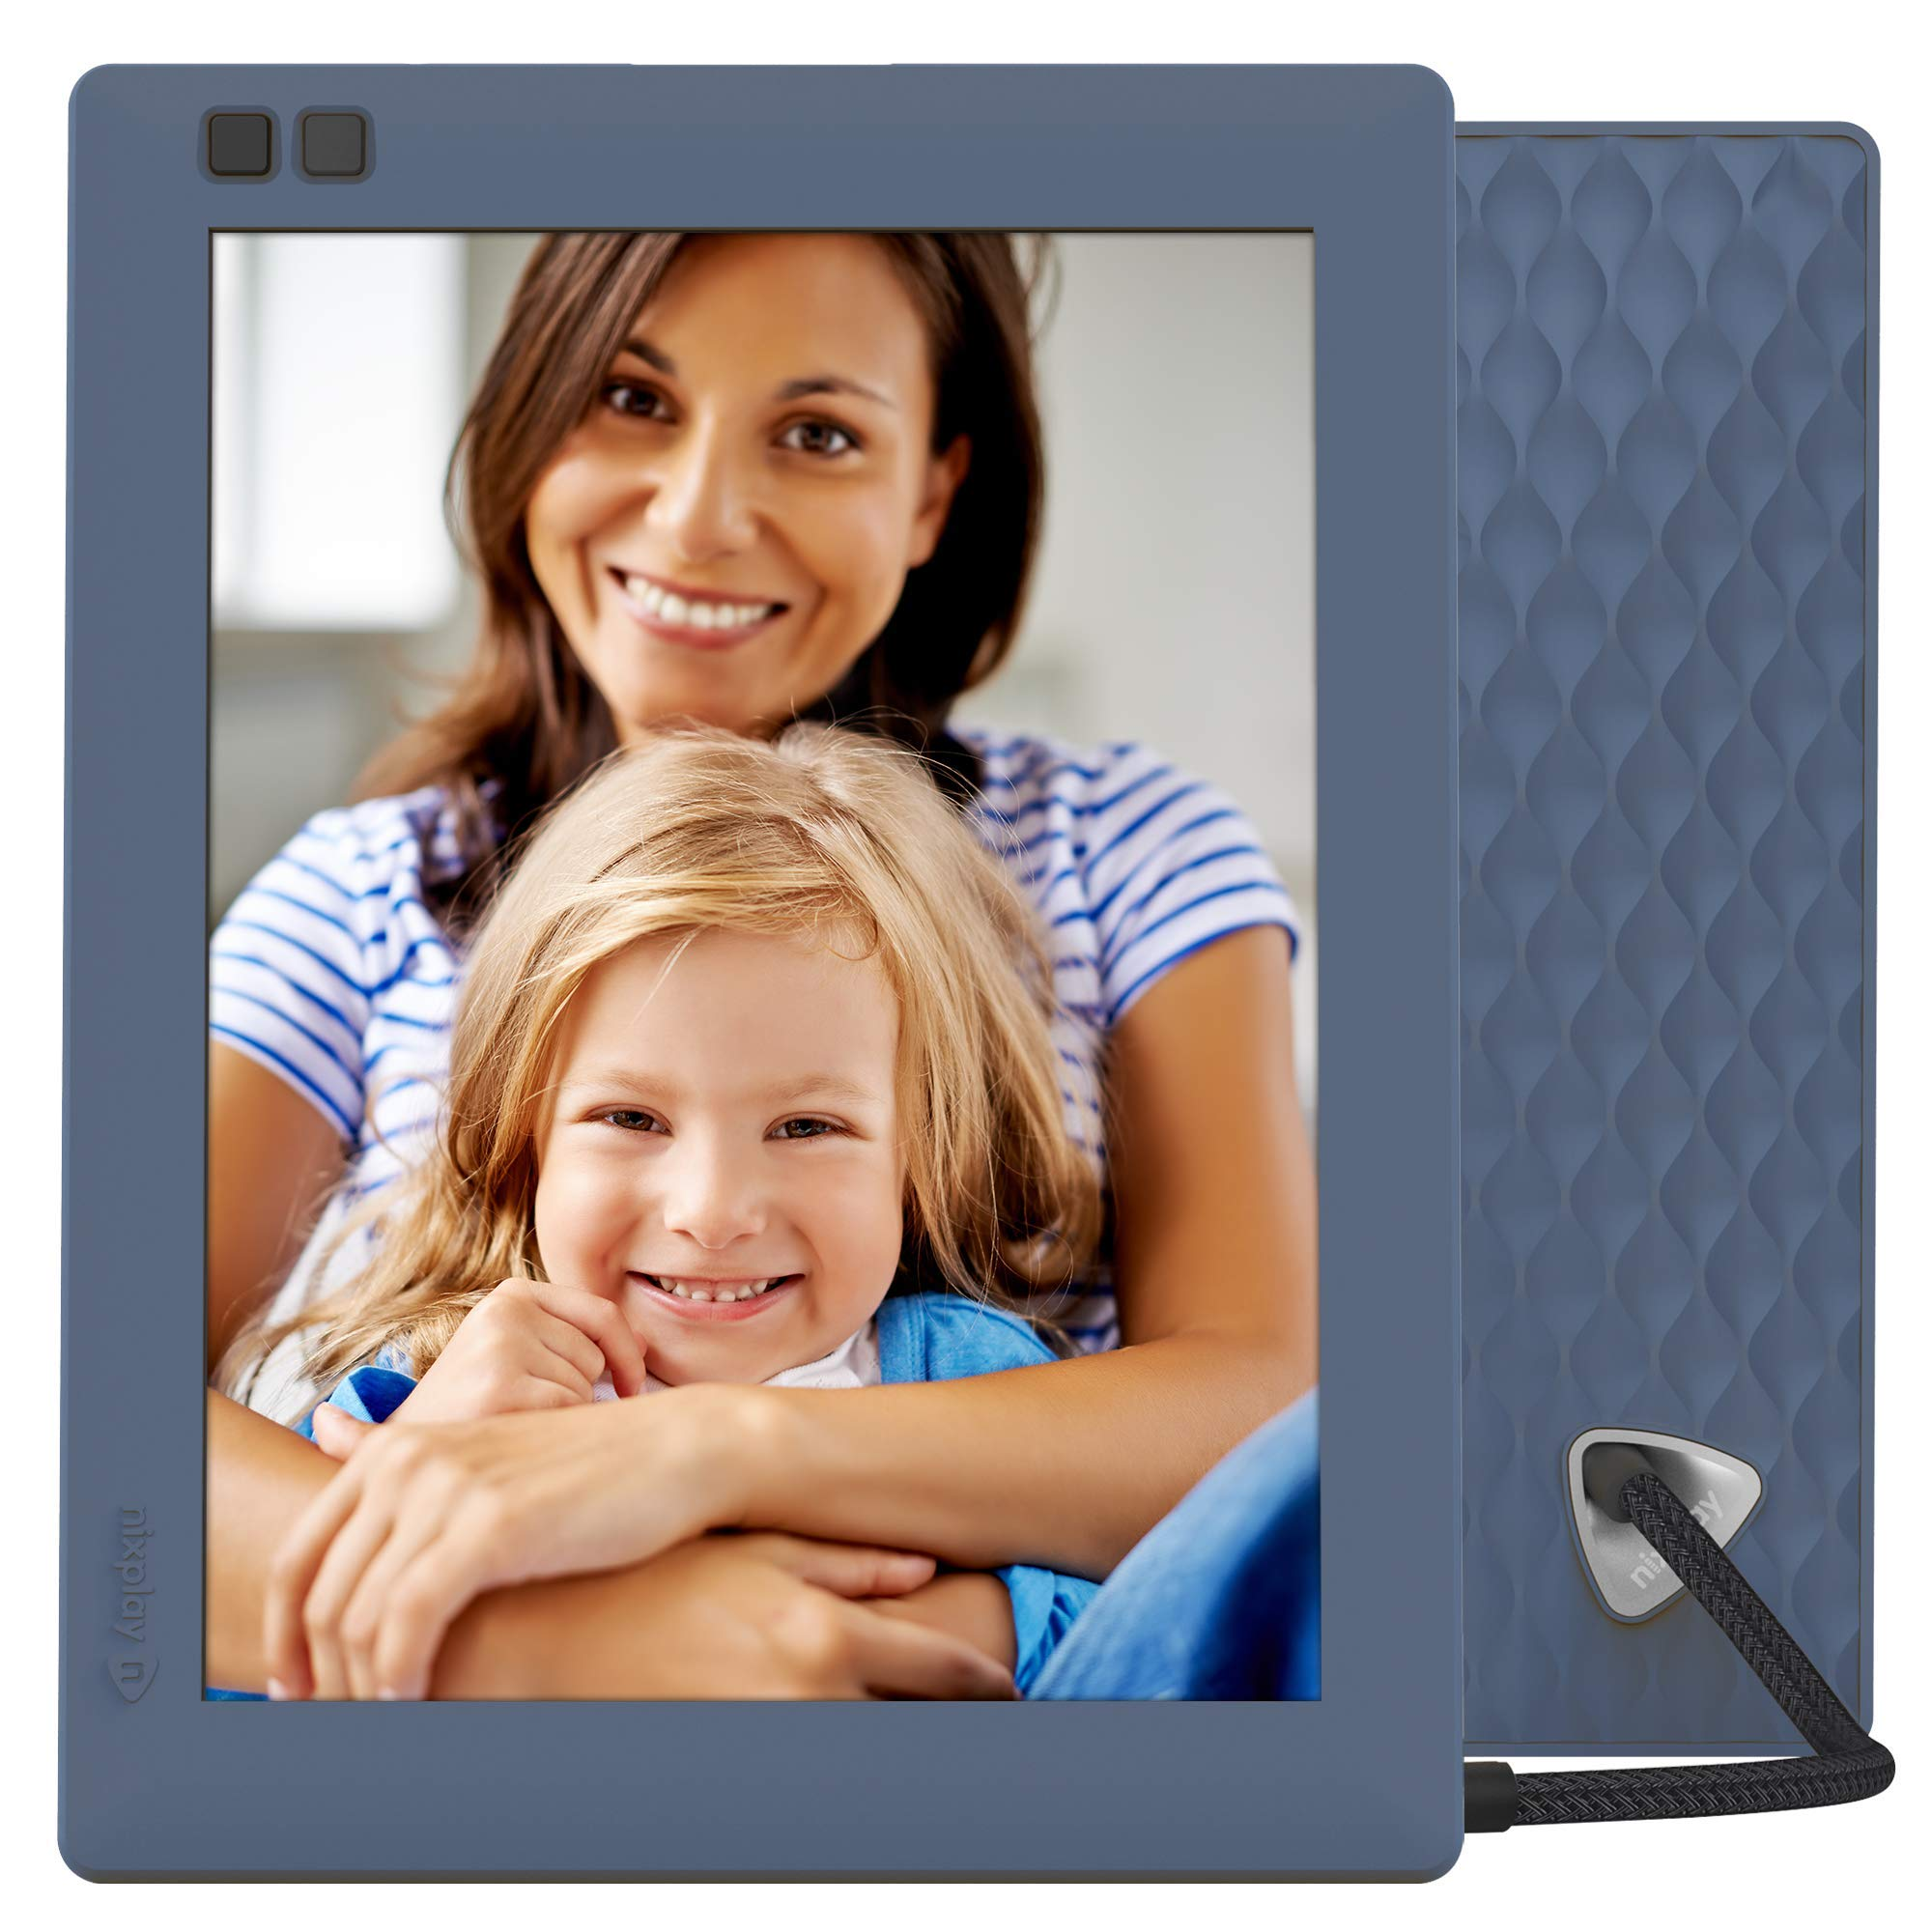 Nixplay Seed 8 Inch Digital Wi-Fi Photo Frame W08D (Blue) - Smart Frame with IPS Display, Motion Sensor and 10GB Online Storage, Display and Share Photos with Friends via Nixplay Mobile App by nixplay